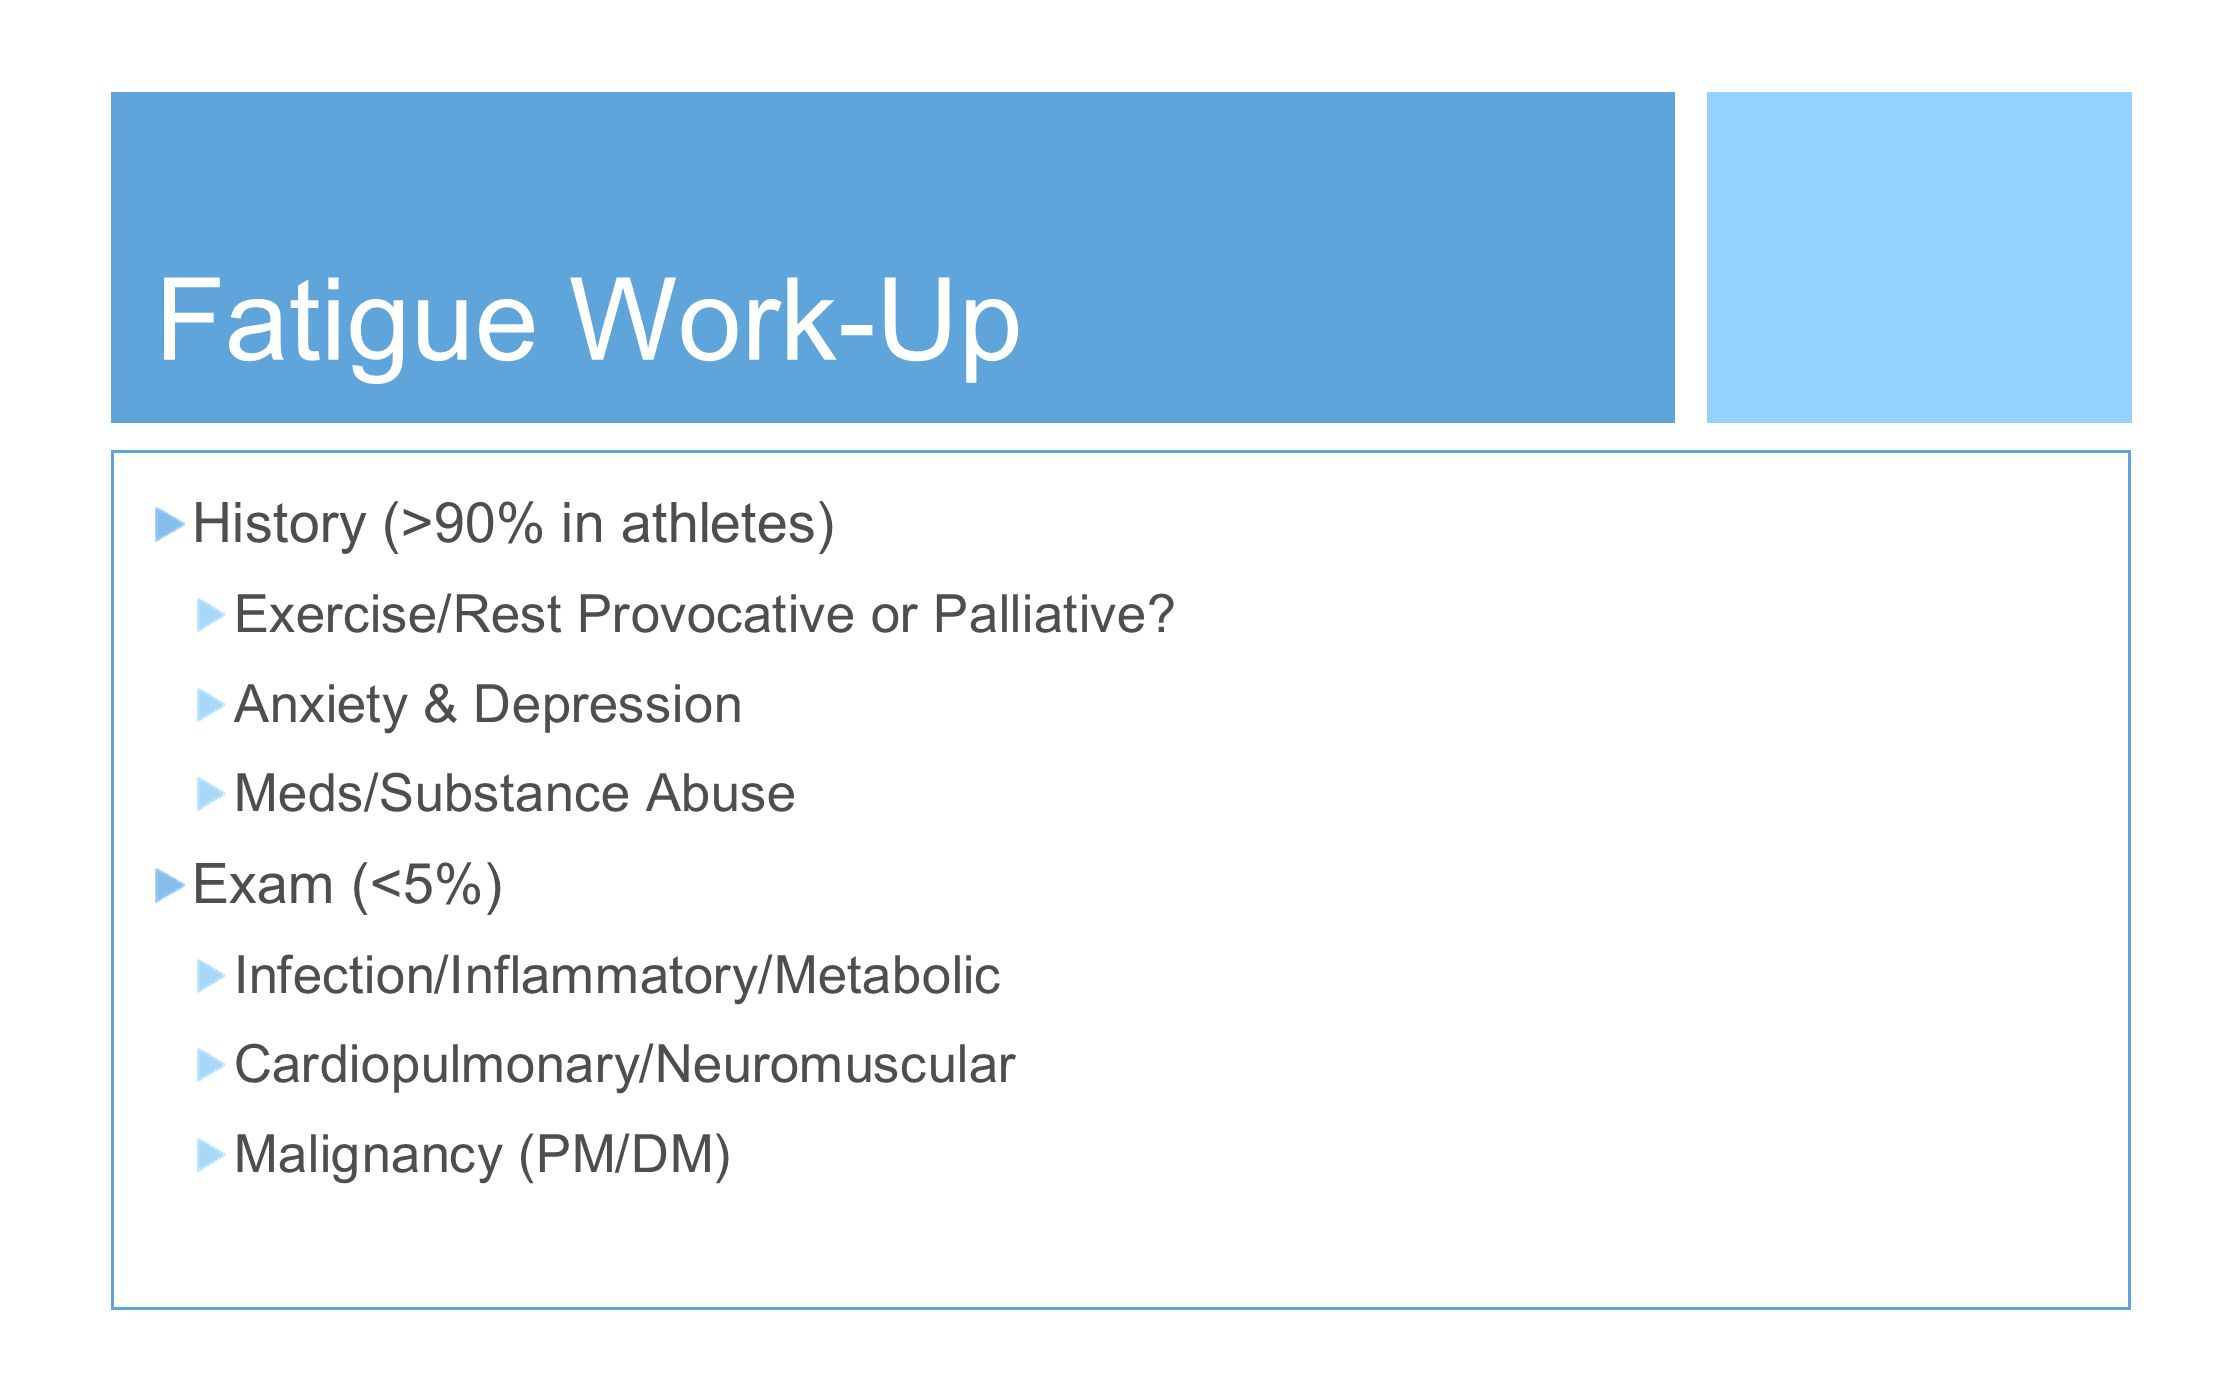 Fatigue Work-Up History (>90% in athletes) Exercise/Rest Provocative or Palliative? Anxiety & Depression Meds/Substance Abuse Exam (<5%) Infection/Inf